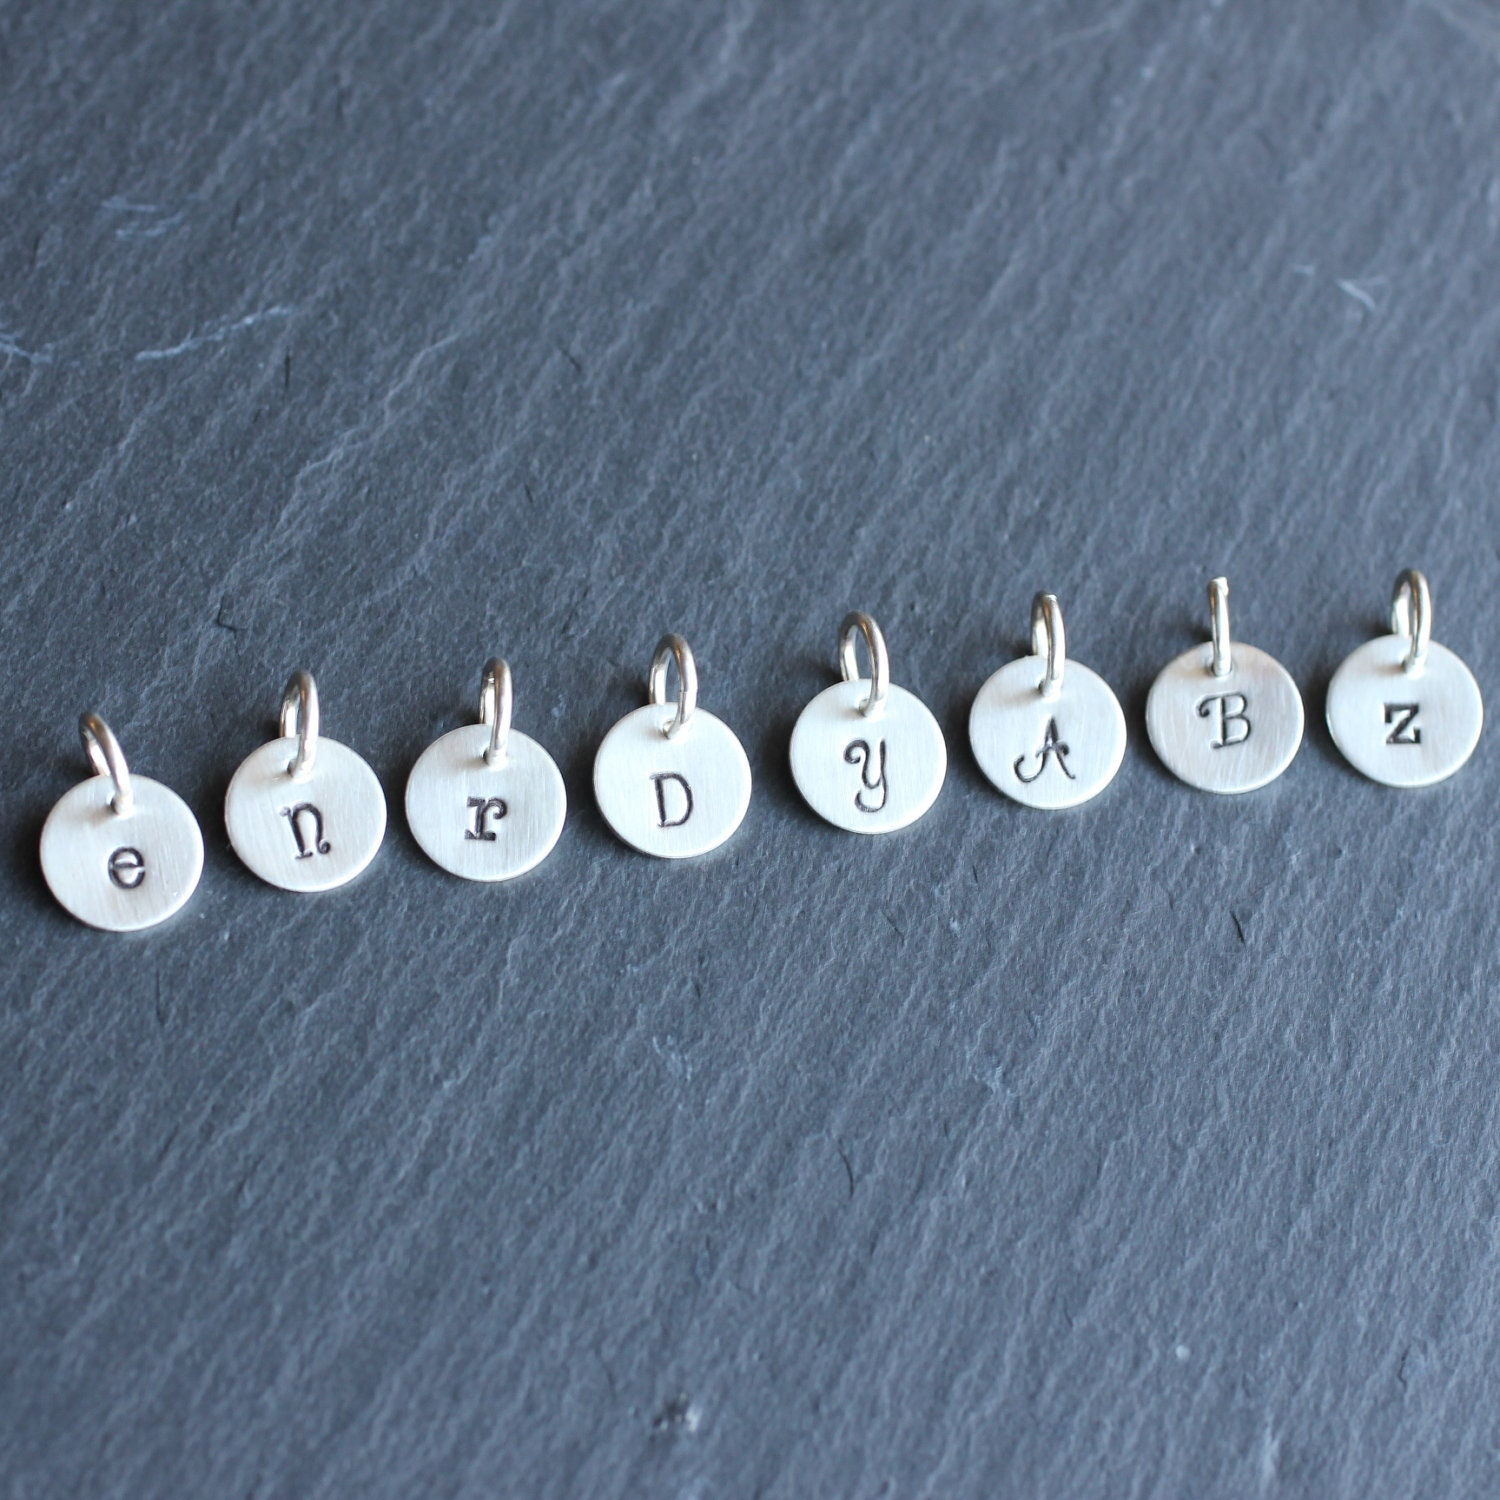 Initial Charm Bracelets: Tiny Initial Charms Hand Stamped Letter Or Picture Charms